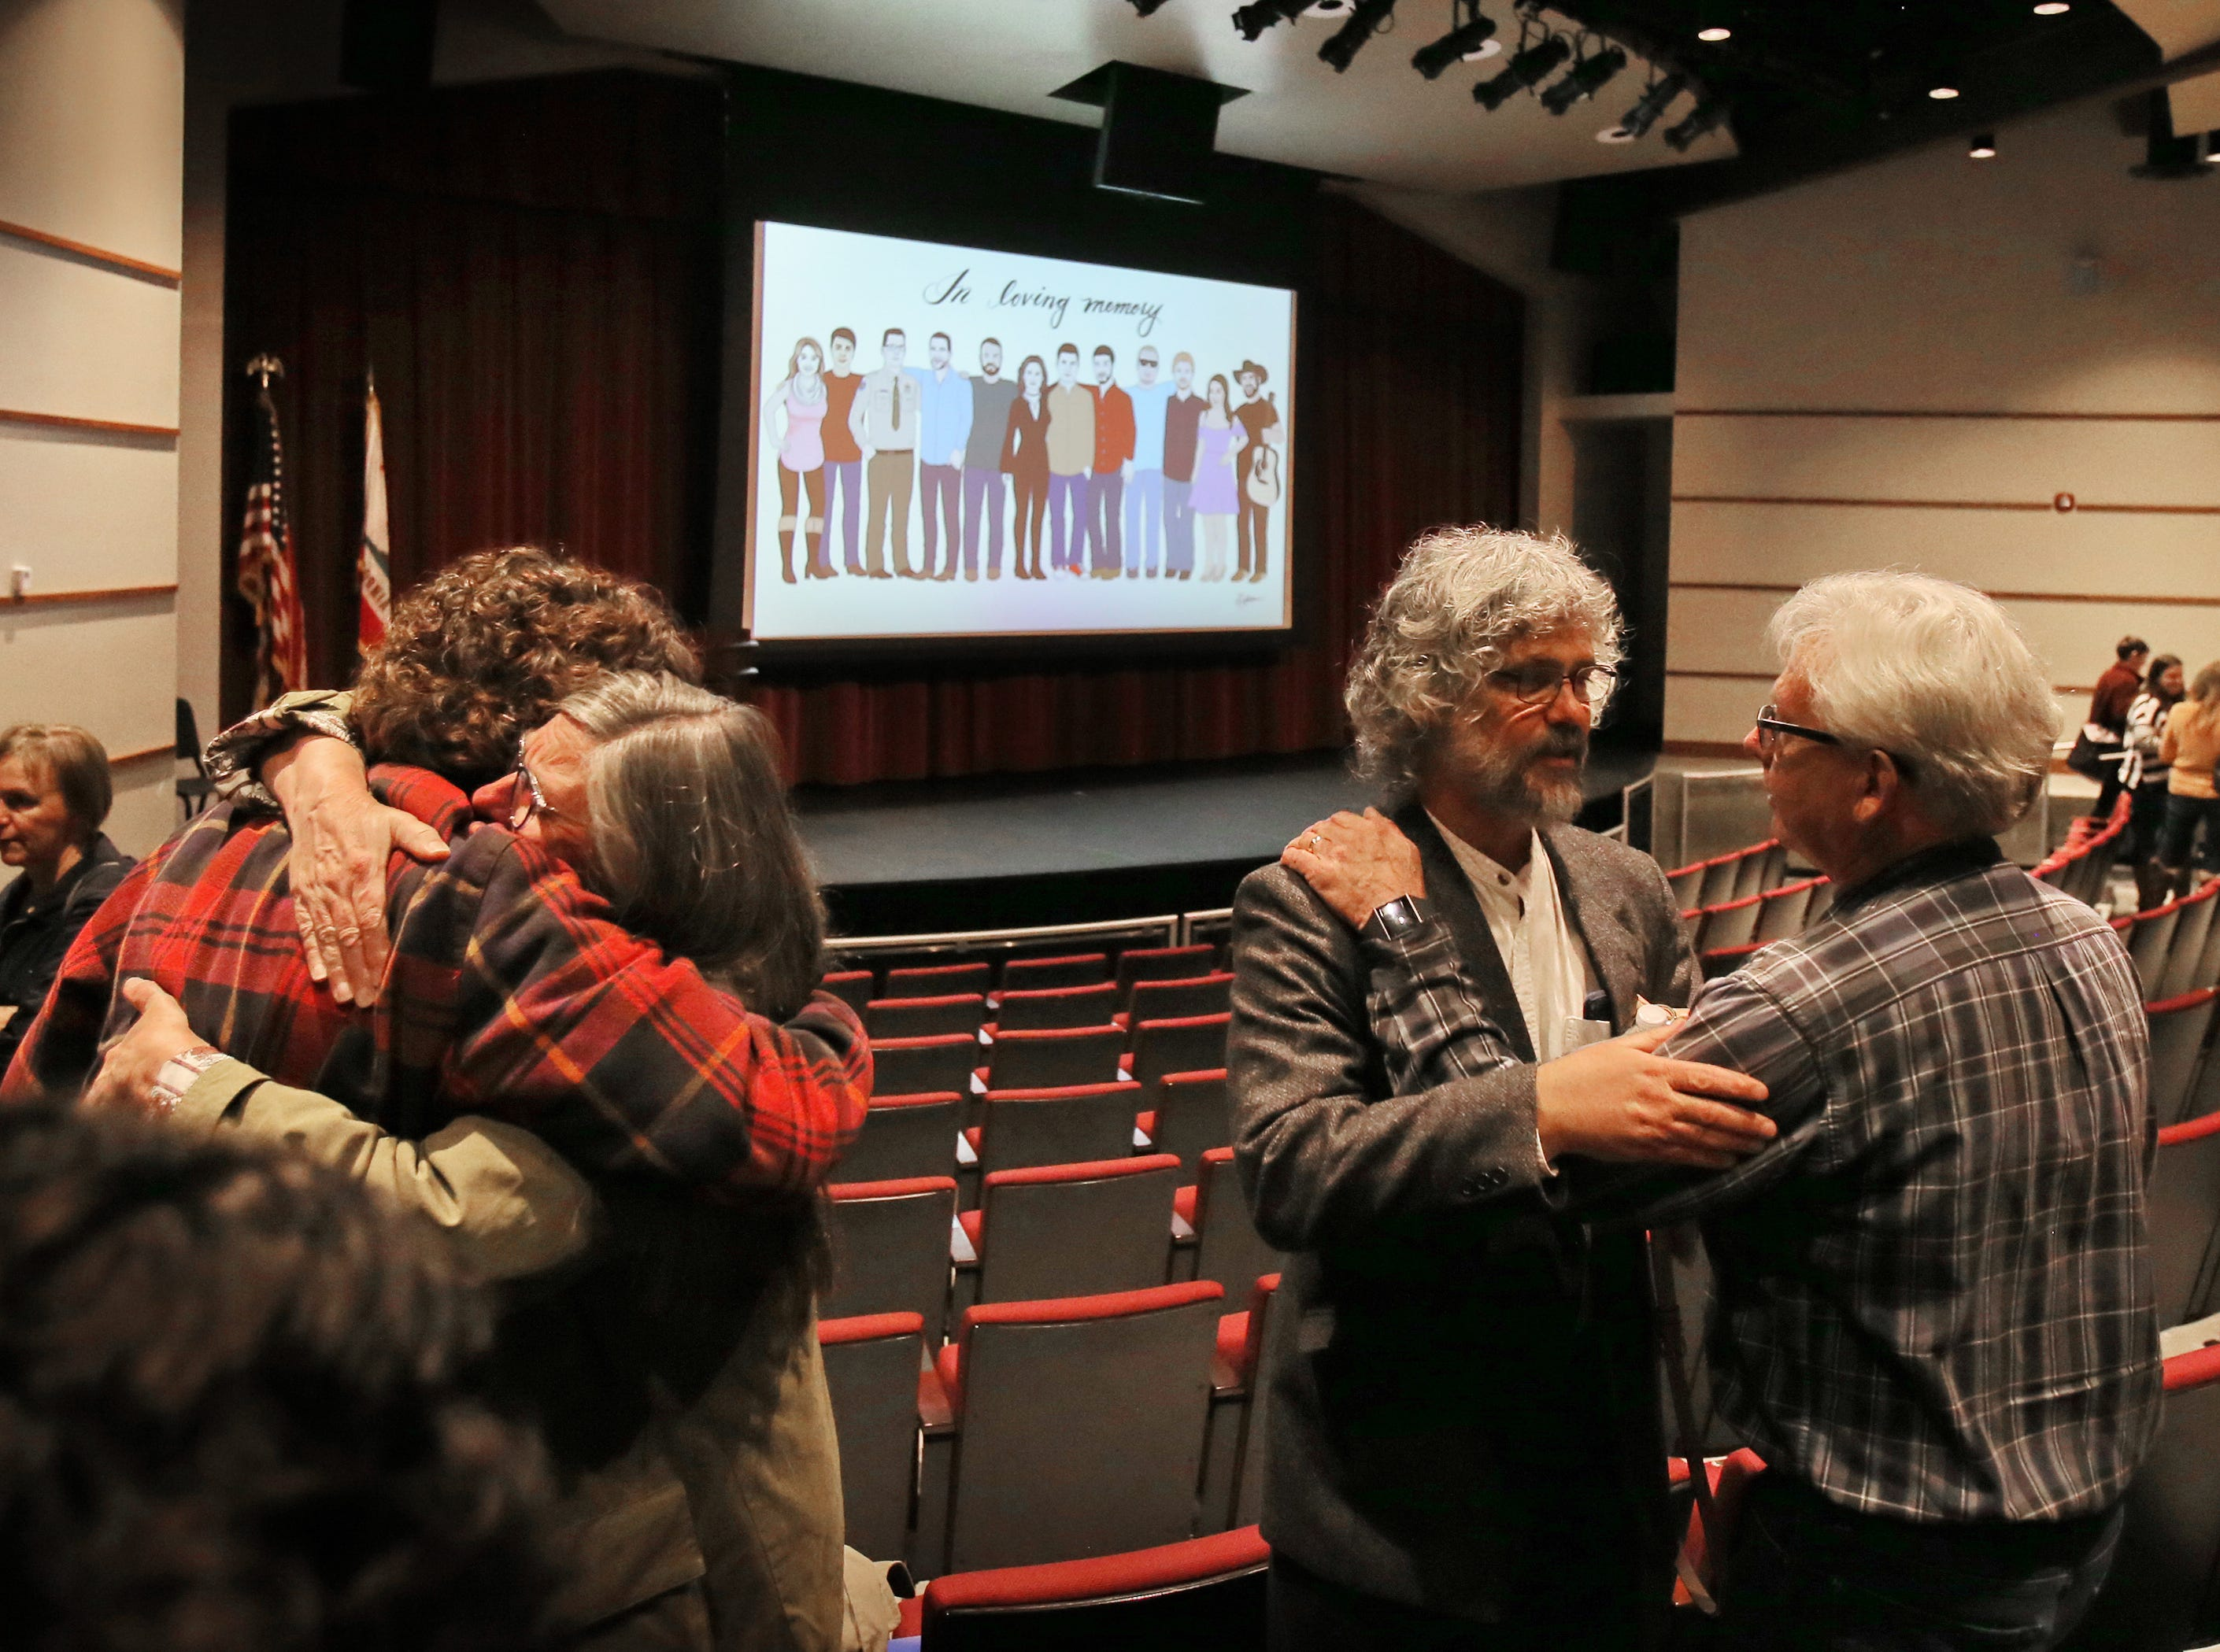 Family friends console Susan Orfanos, left in the red plaid shirt, and her husband Marc, center, after a gun violence forum Sunday at Westlake High School in Thousand Oaks. The Orfanos' son Telemachus Orfanos was among the victims of the shooting at Borderline Bar & Grill. Around 200 people, including local lawmakers, attended the event.